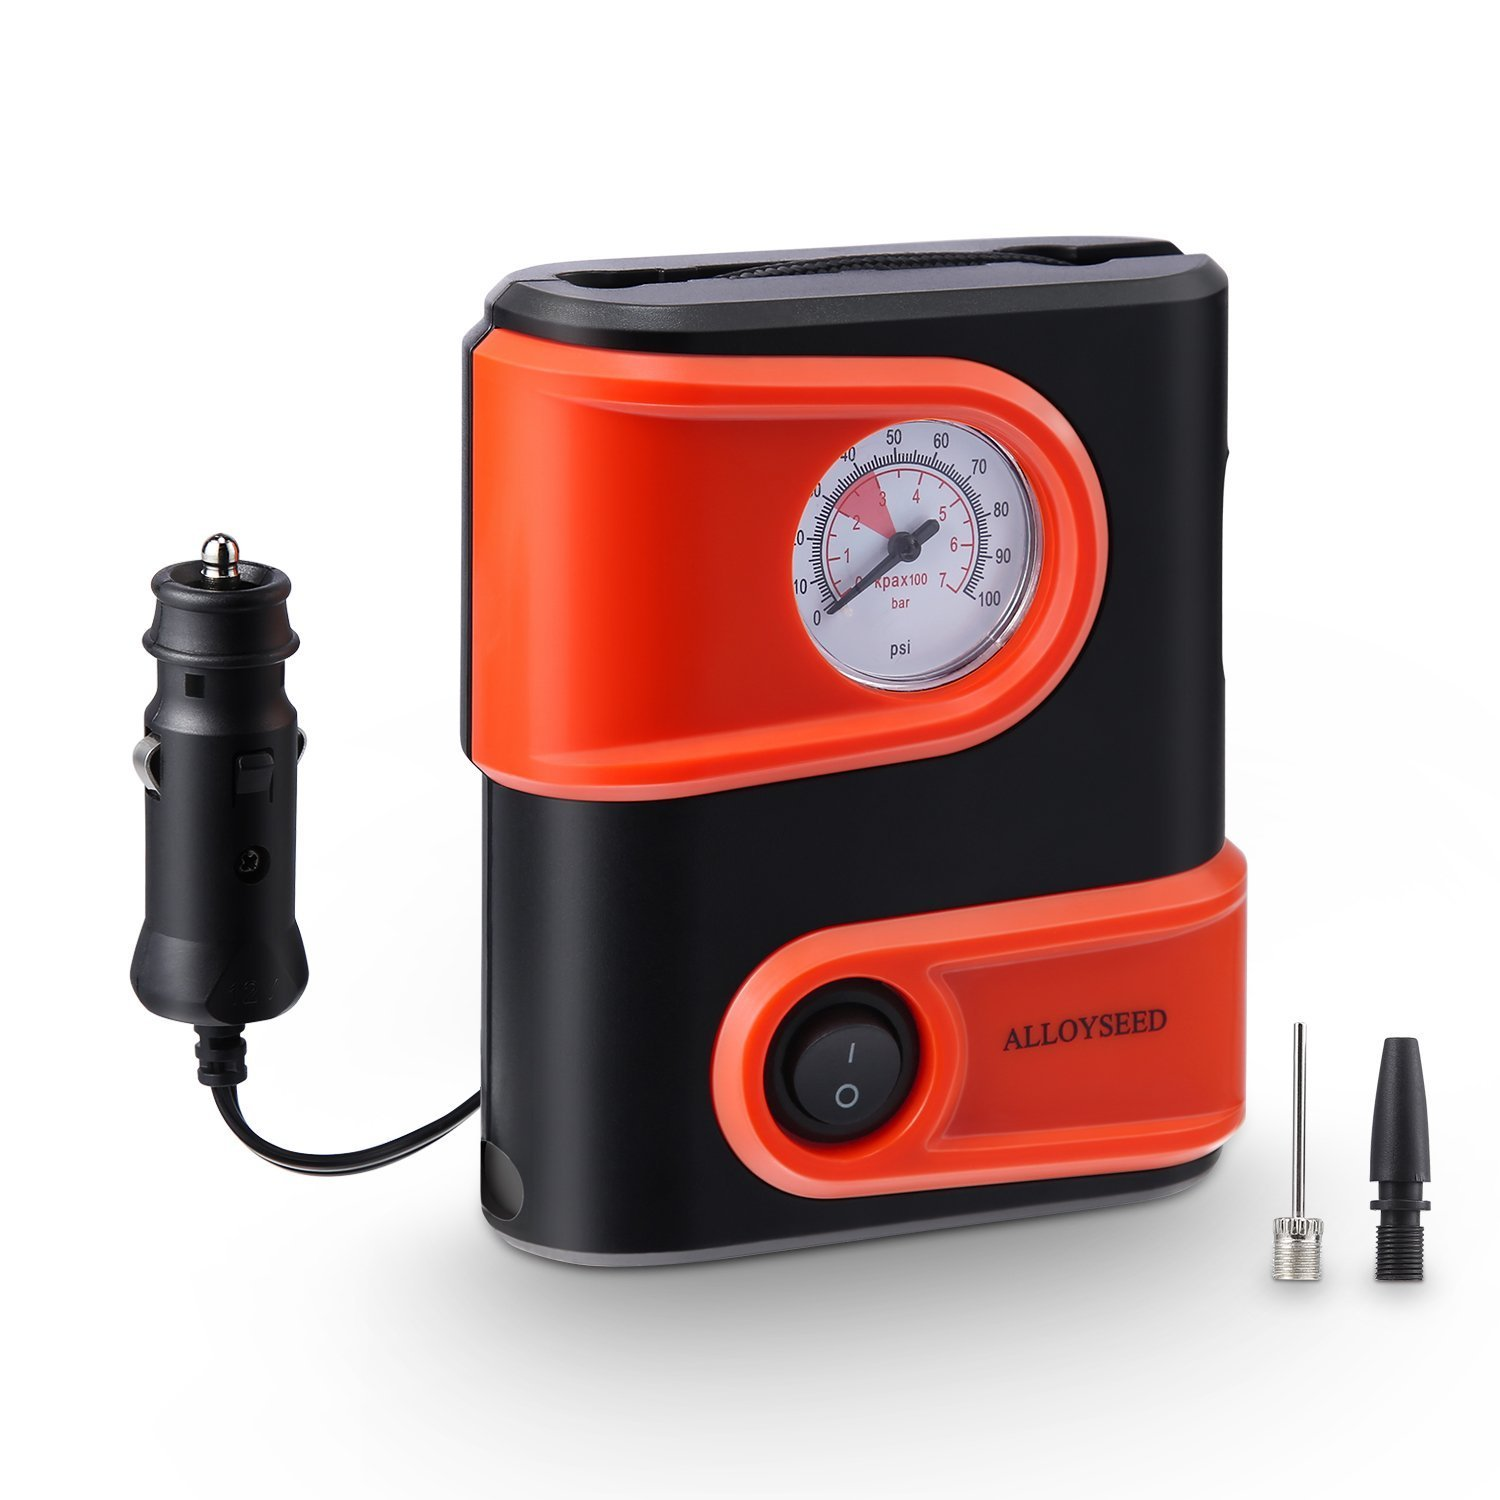 Alloyseed Portable Tire Inflator, Mini Air Compressor Pump with Built-in Gauge, 12V DC 100 PSI Tire Pump with Emergency Light for Car, Truck, Vehicle, Bicycle RV and Inflatables (Type1)